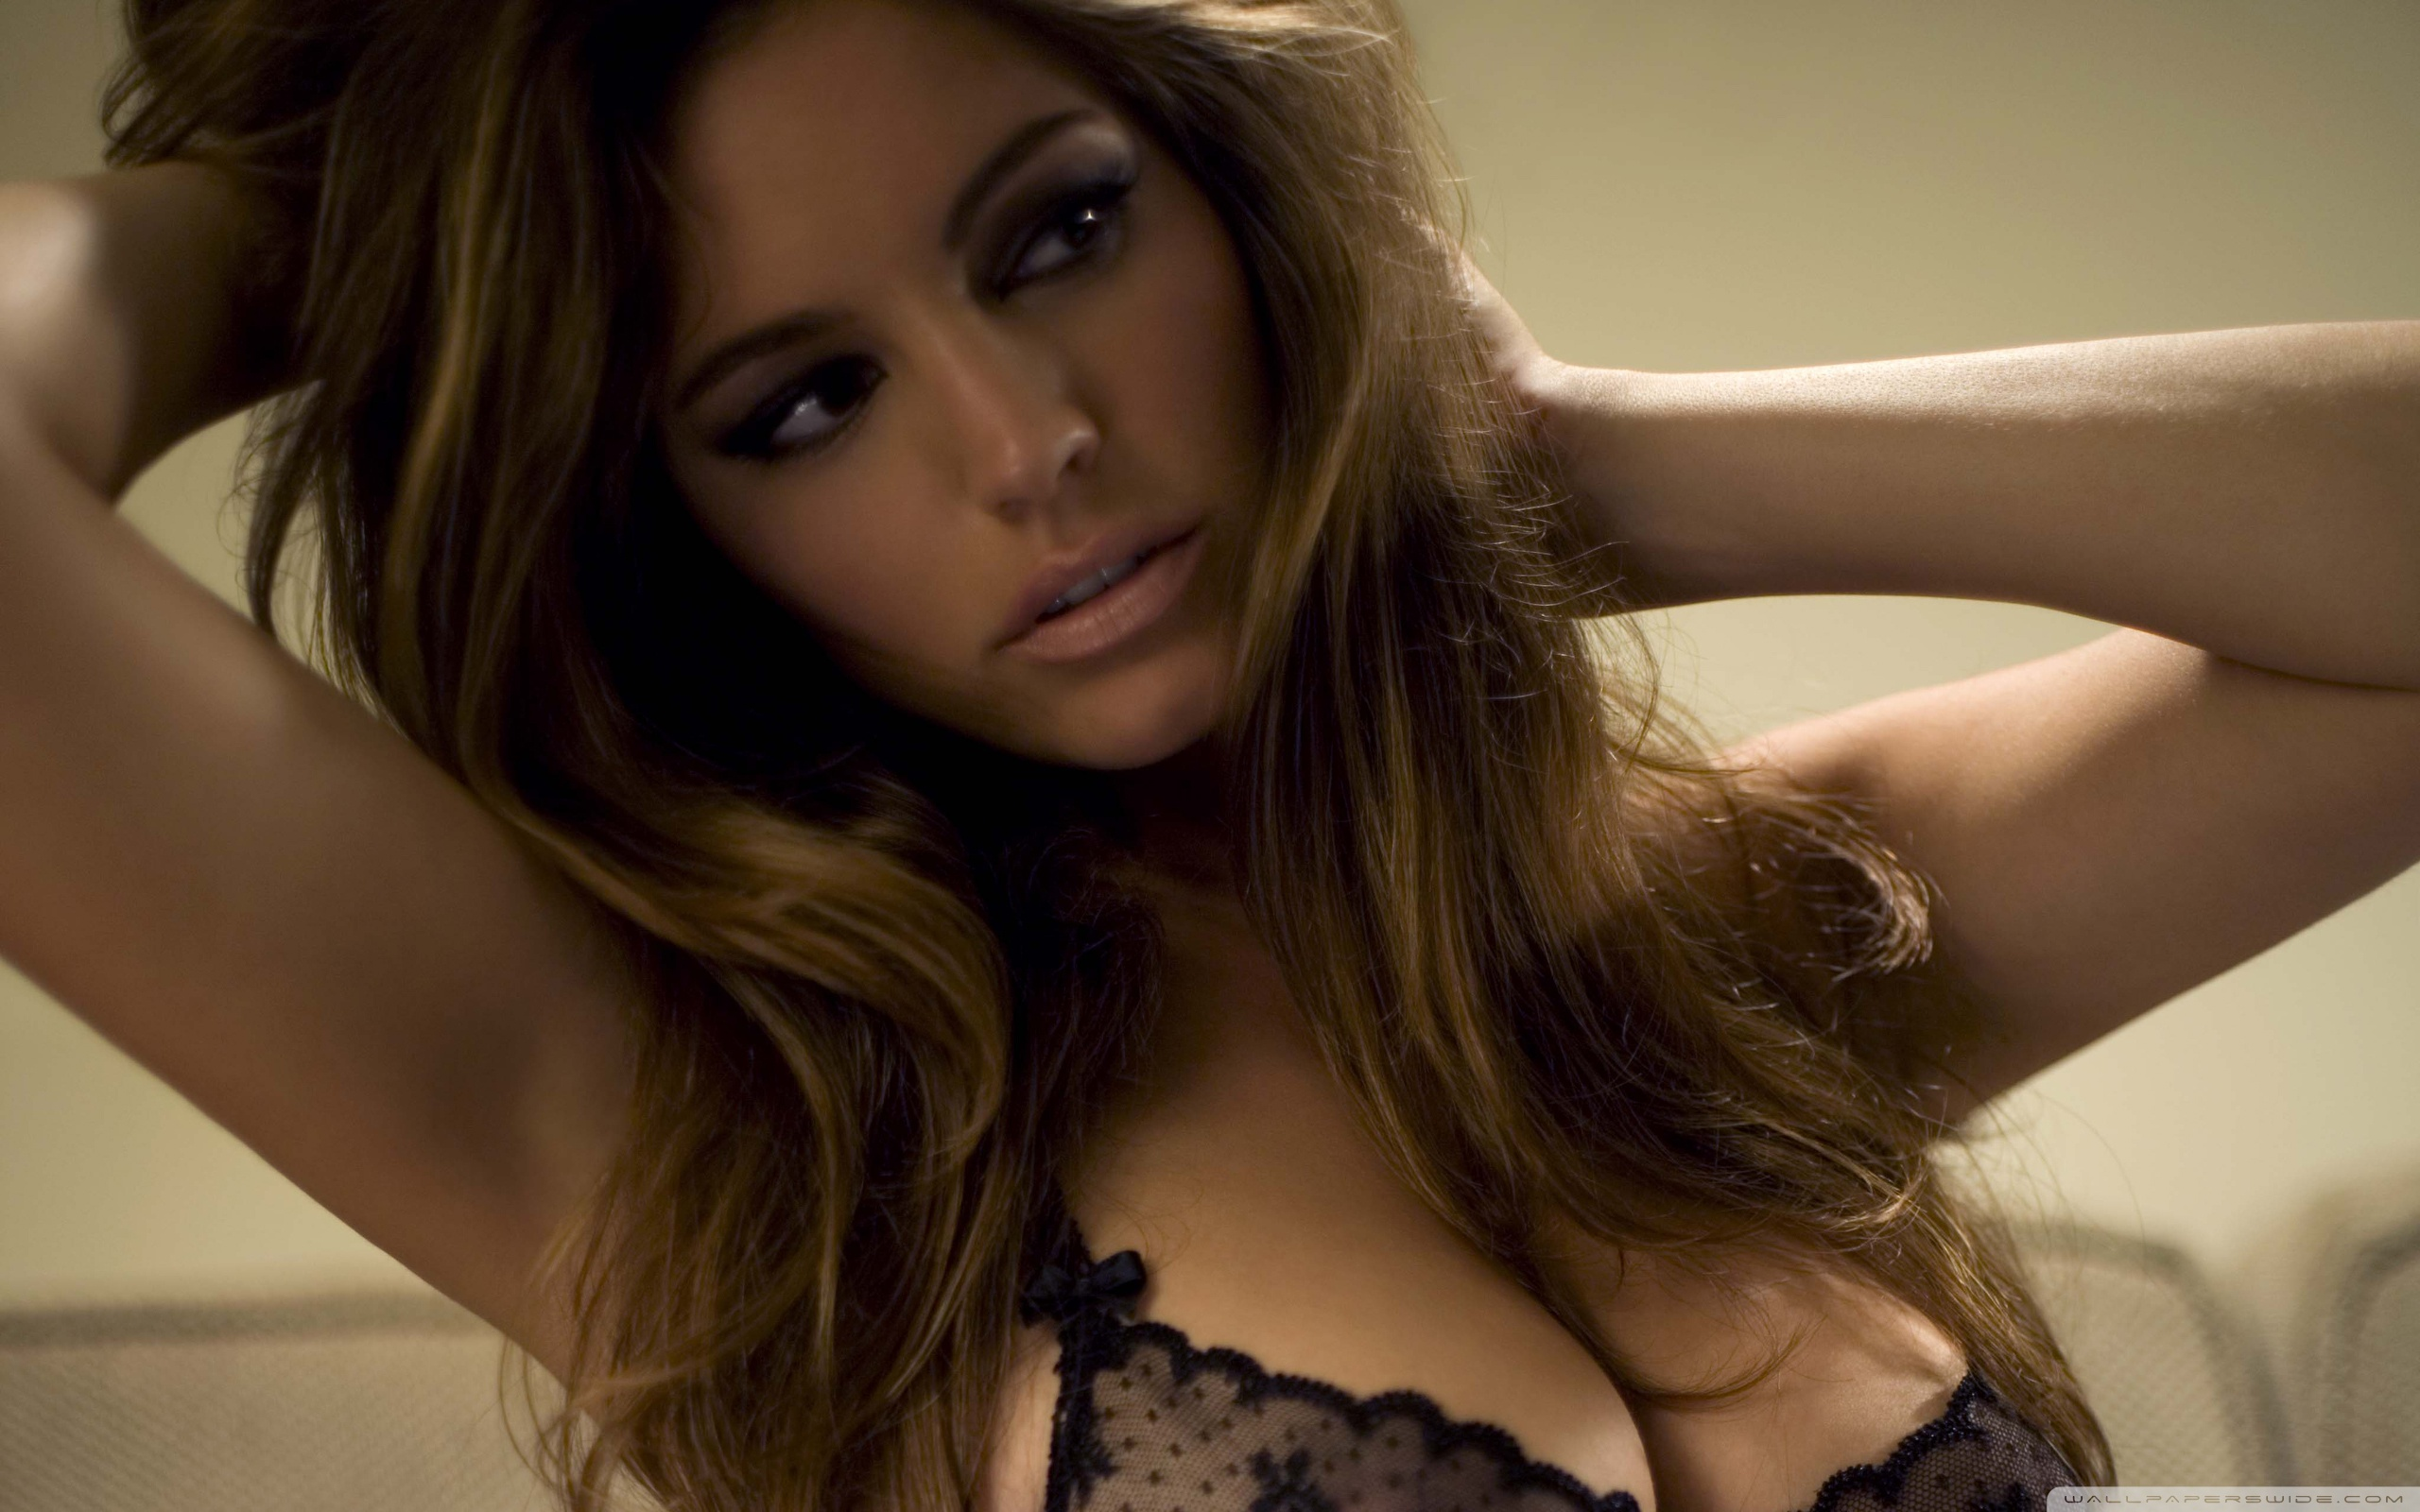 2560x1600 - Kelly Brook Wallpapers 5